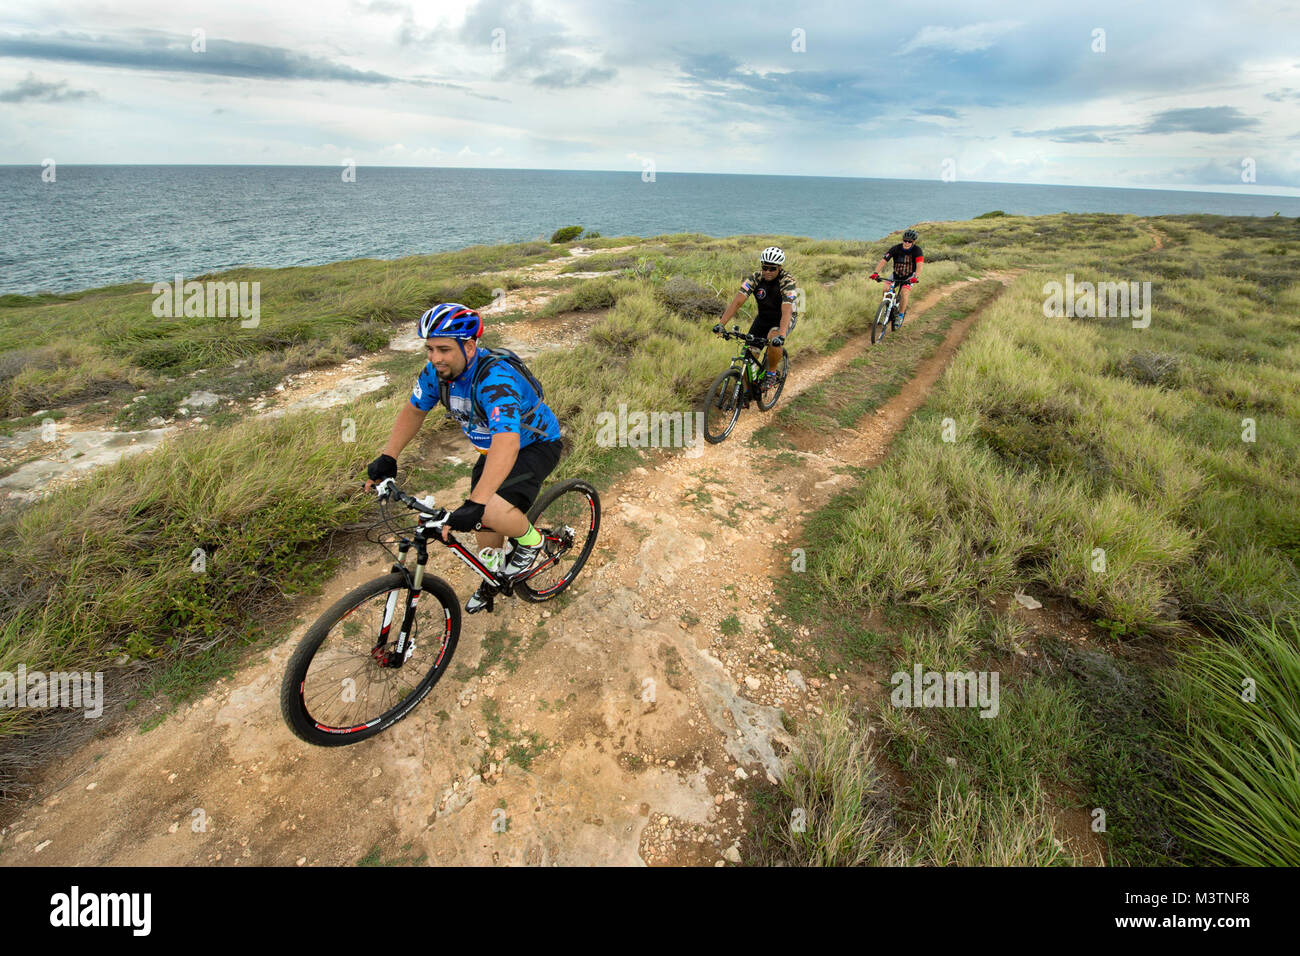 Supporters of Warriors 4 Life nonprofit veterans group ride alongside the ocean in Cabo Rojo, Puerto Rico Aug. 13, - Stock Image